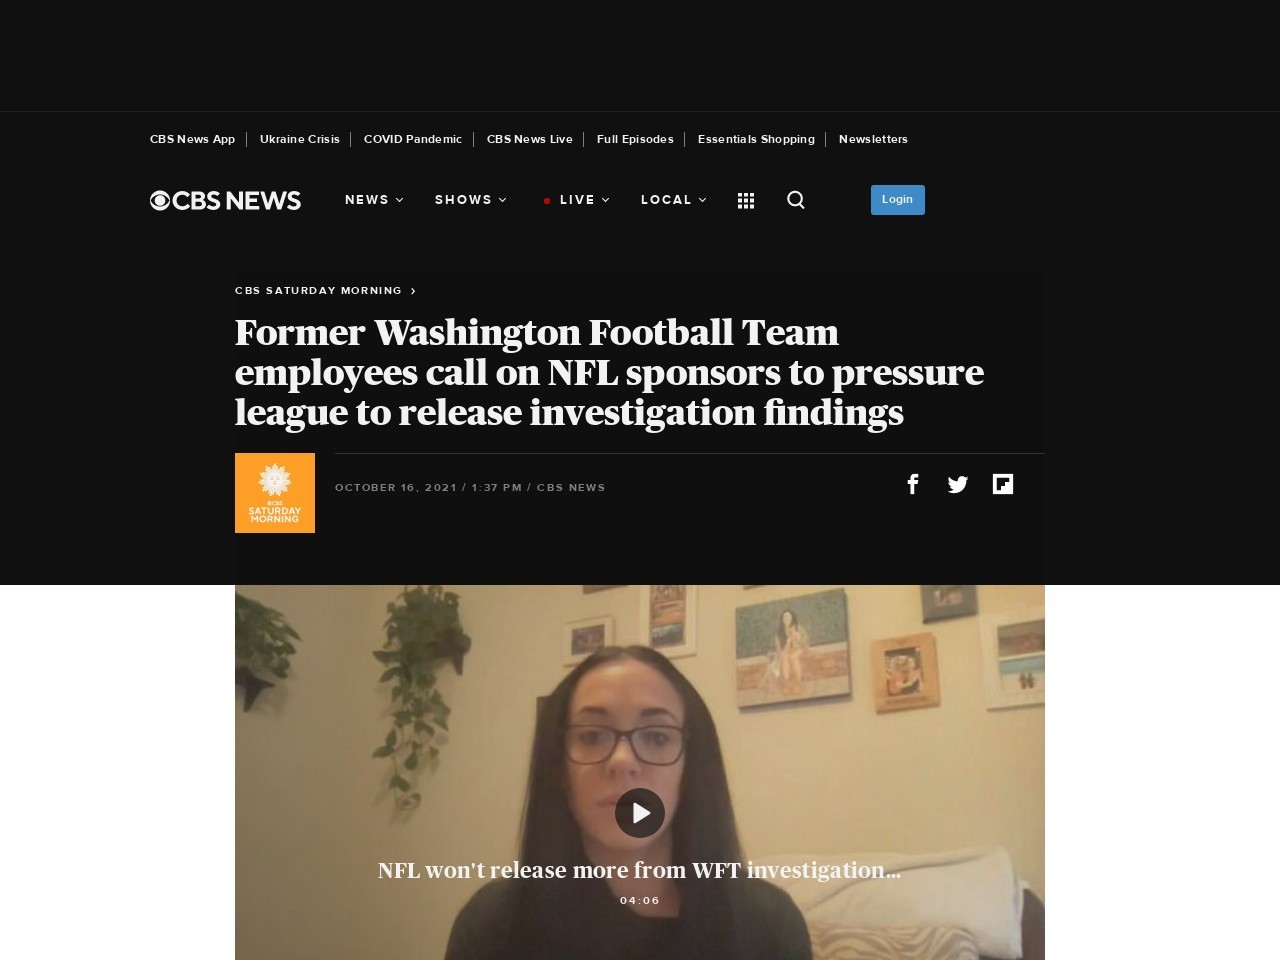 Ex-Washington employees call on NFL sponsors to pressure league to release investigation findings